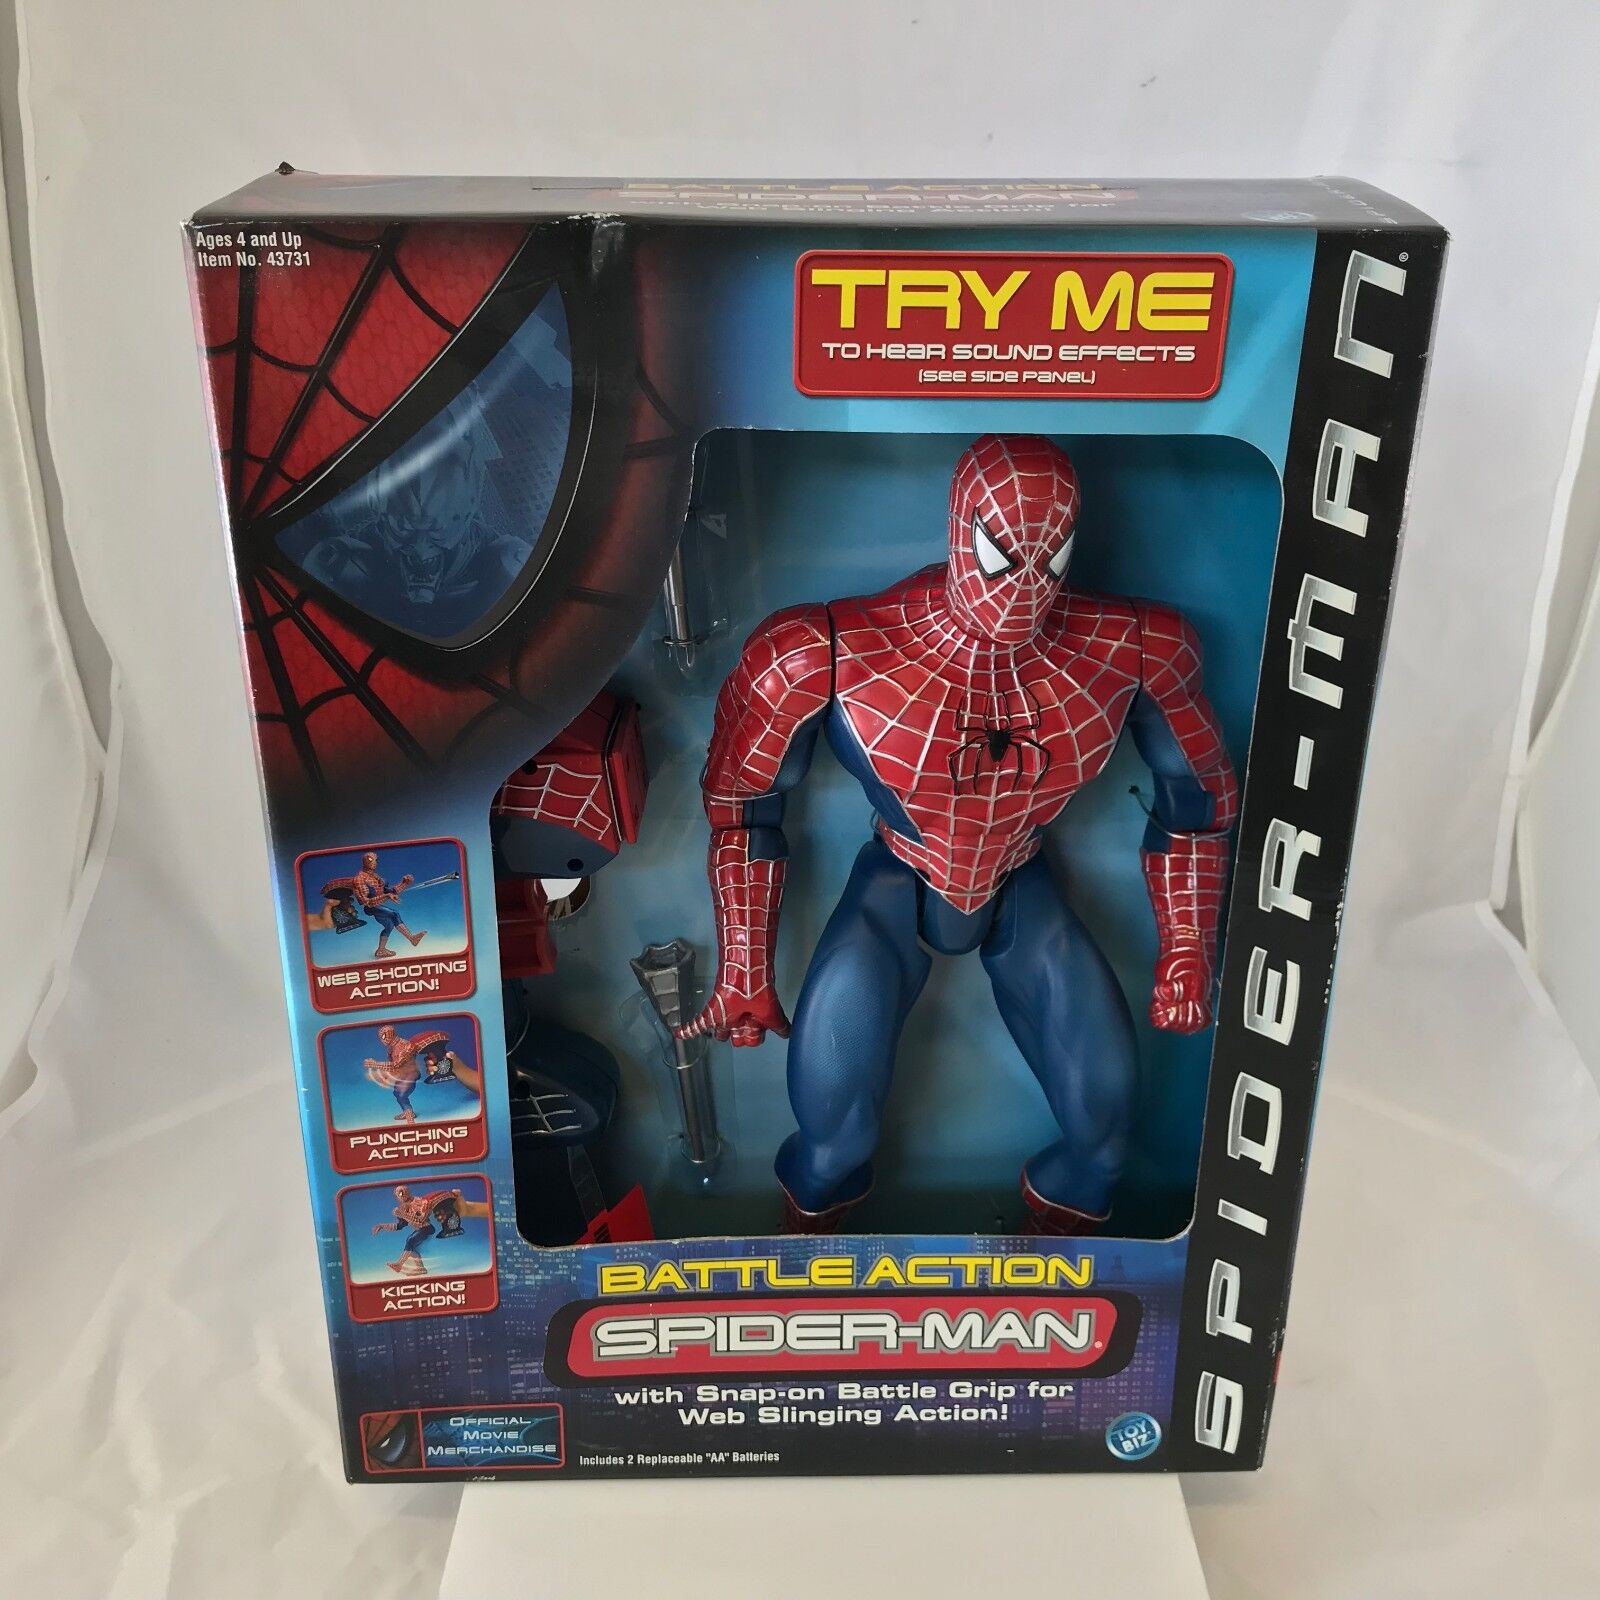 New 2001 ToyBiz Battle Action Spiderman Action Figure Sealed Spider-Man NIB